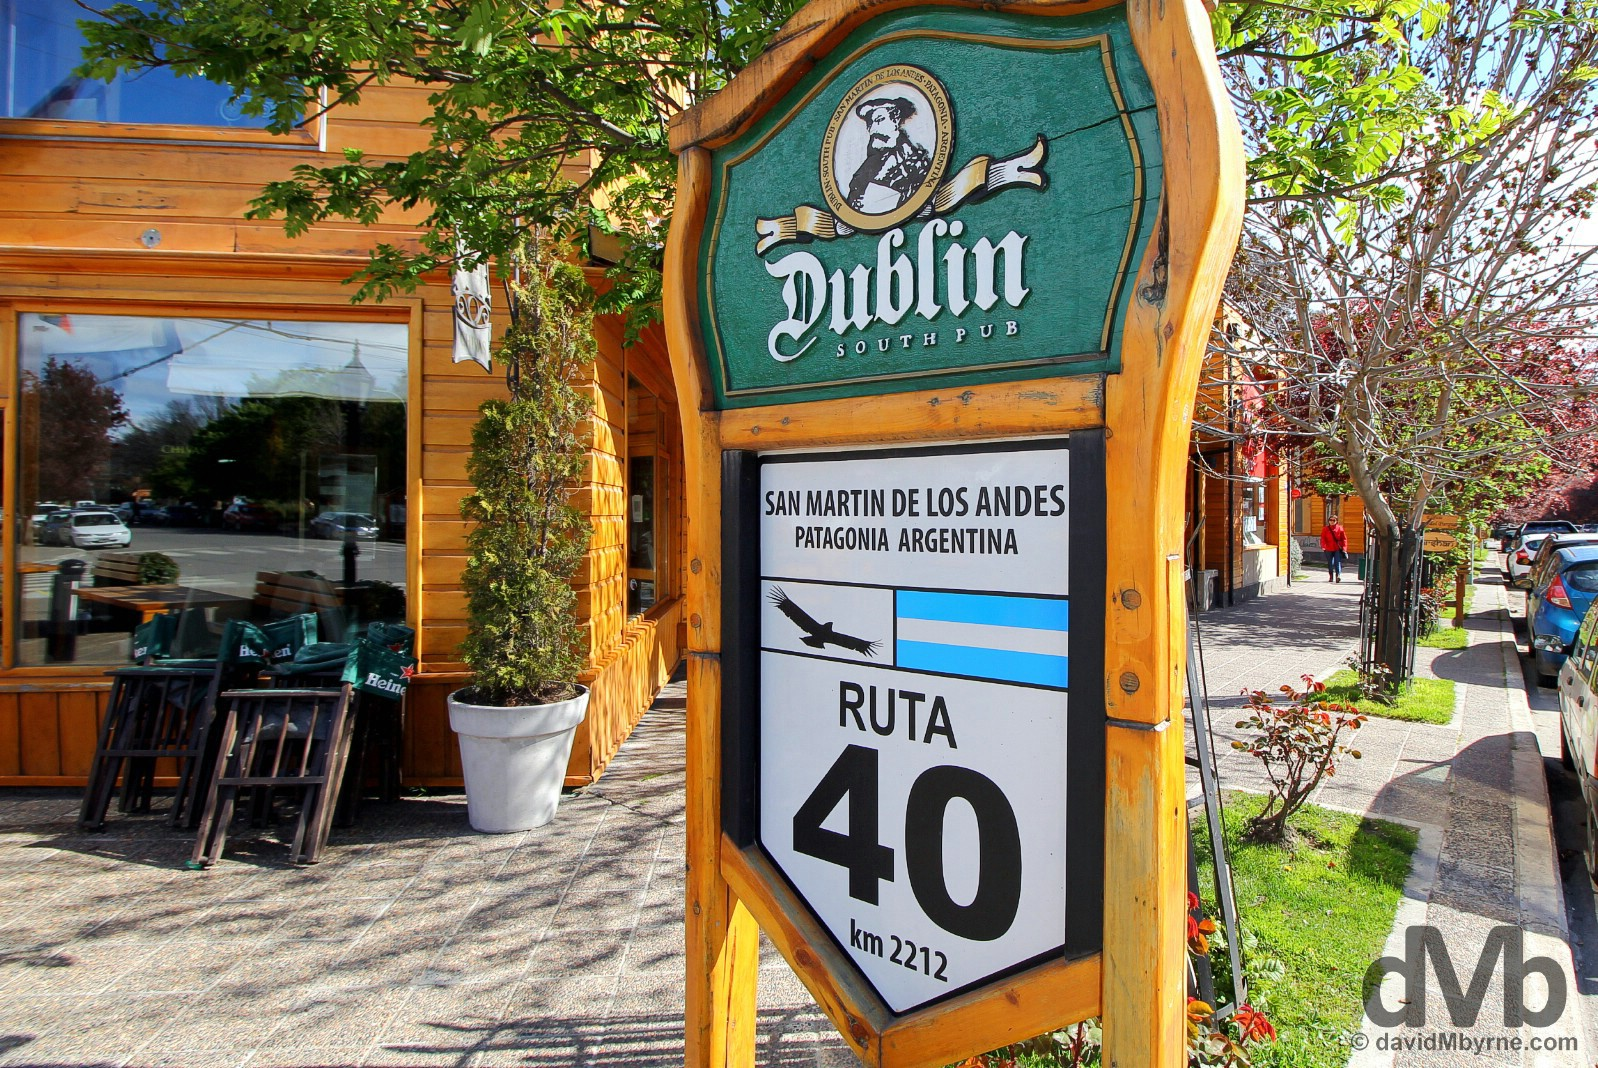 Kilometre 2212 on Ruta 40 in San Martin de los Andes, Patagonia, Argentina. October 14, 2015.